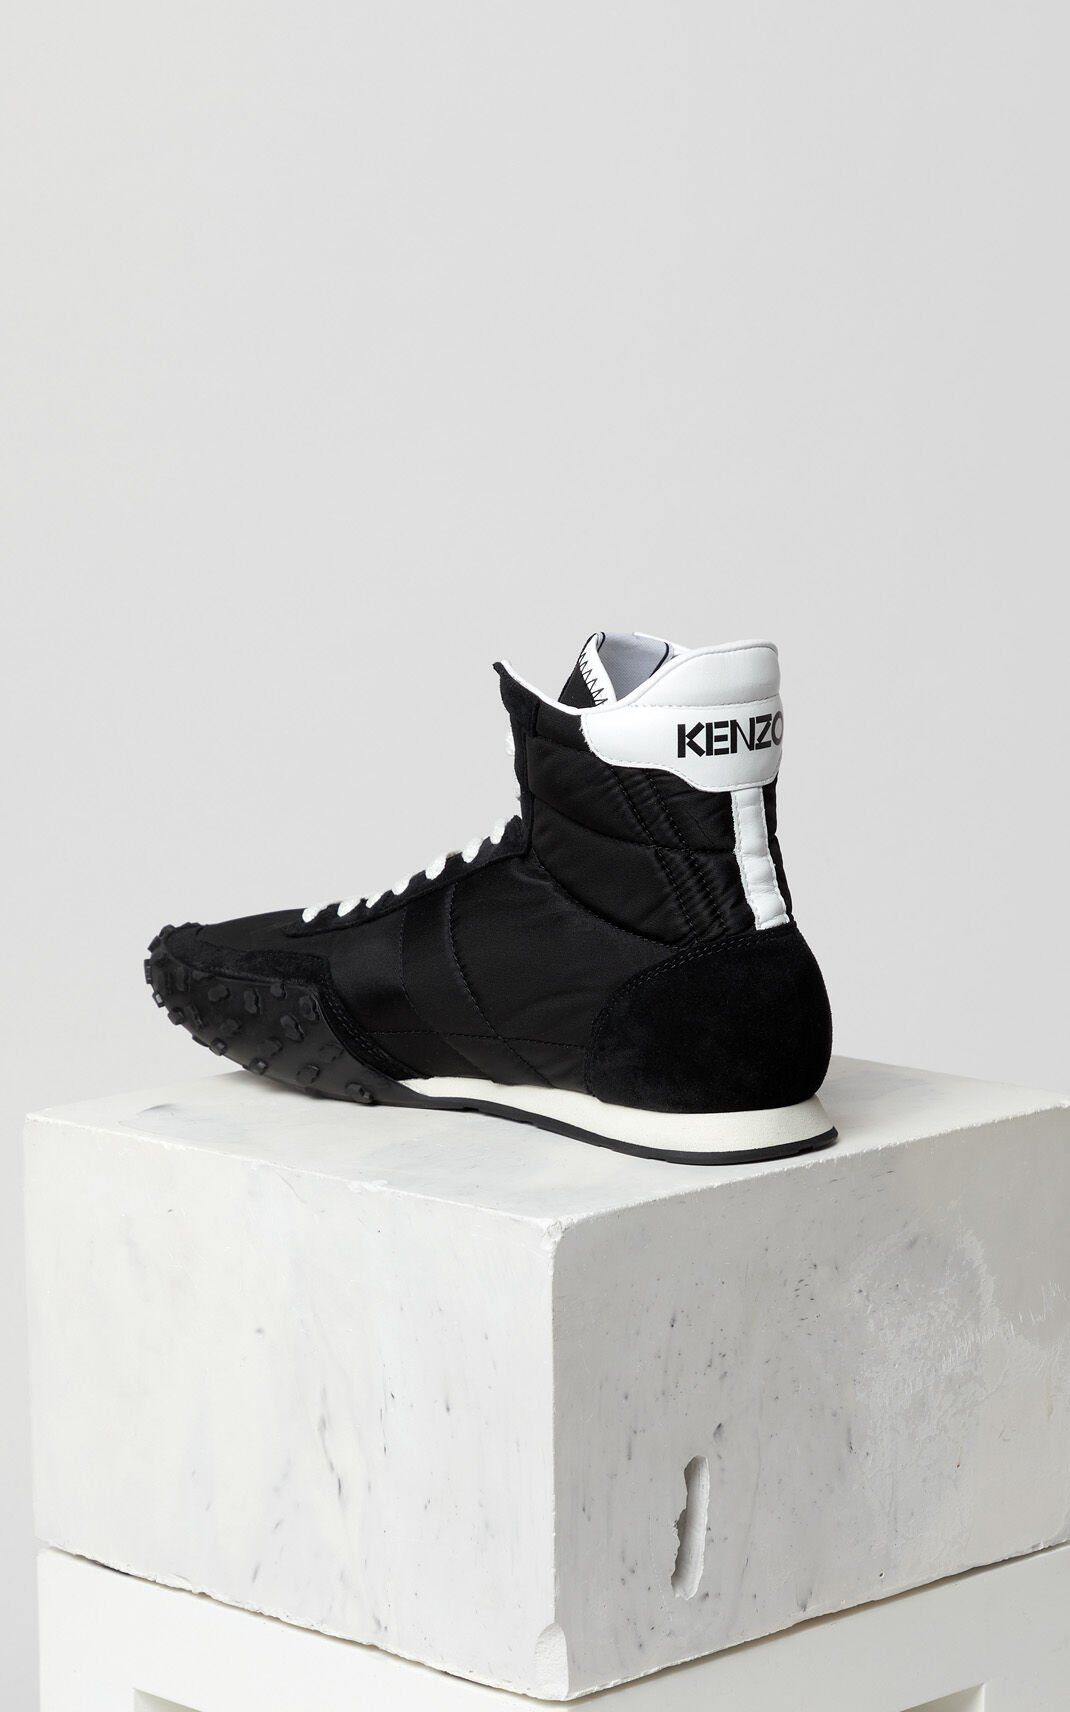 KENZO MOVE high-top sneakers buy cheap pre order in China cheap online nicekicks for sale buy cheap websites gRJAbOy